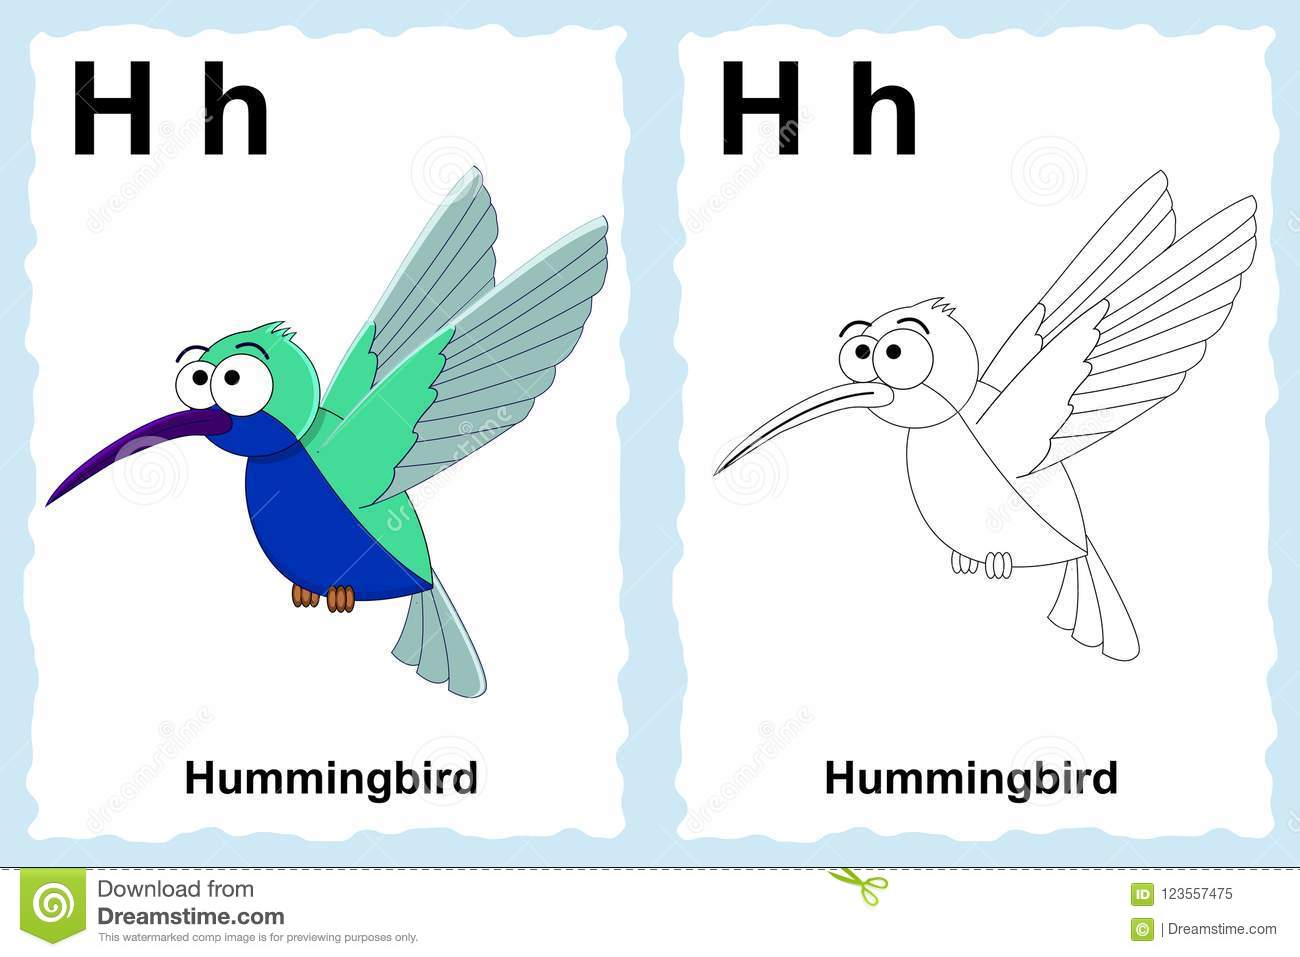 Alphabet coloring book page with outline clip art to color. Letter H. Hummingbird.